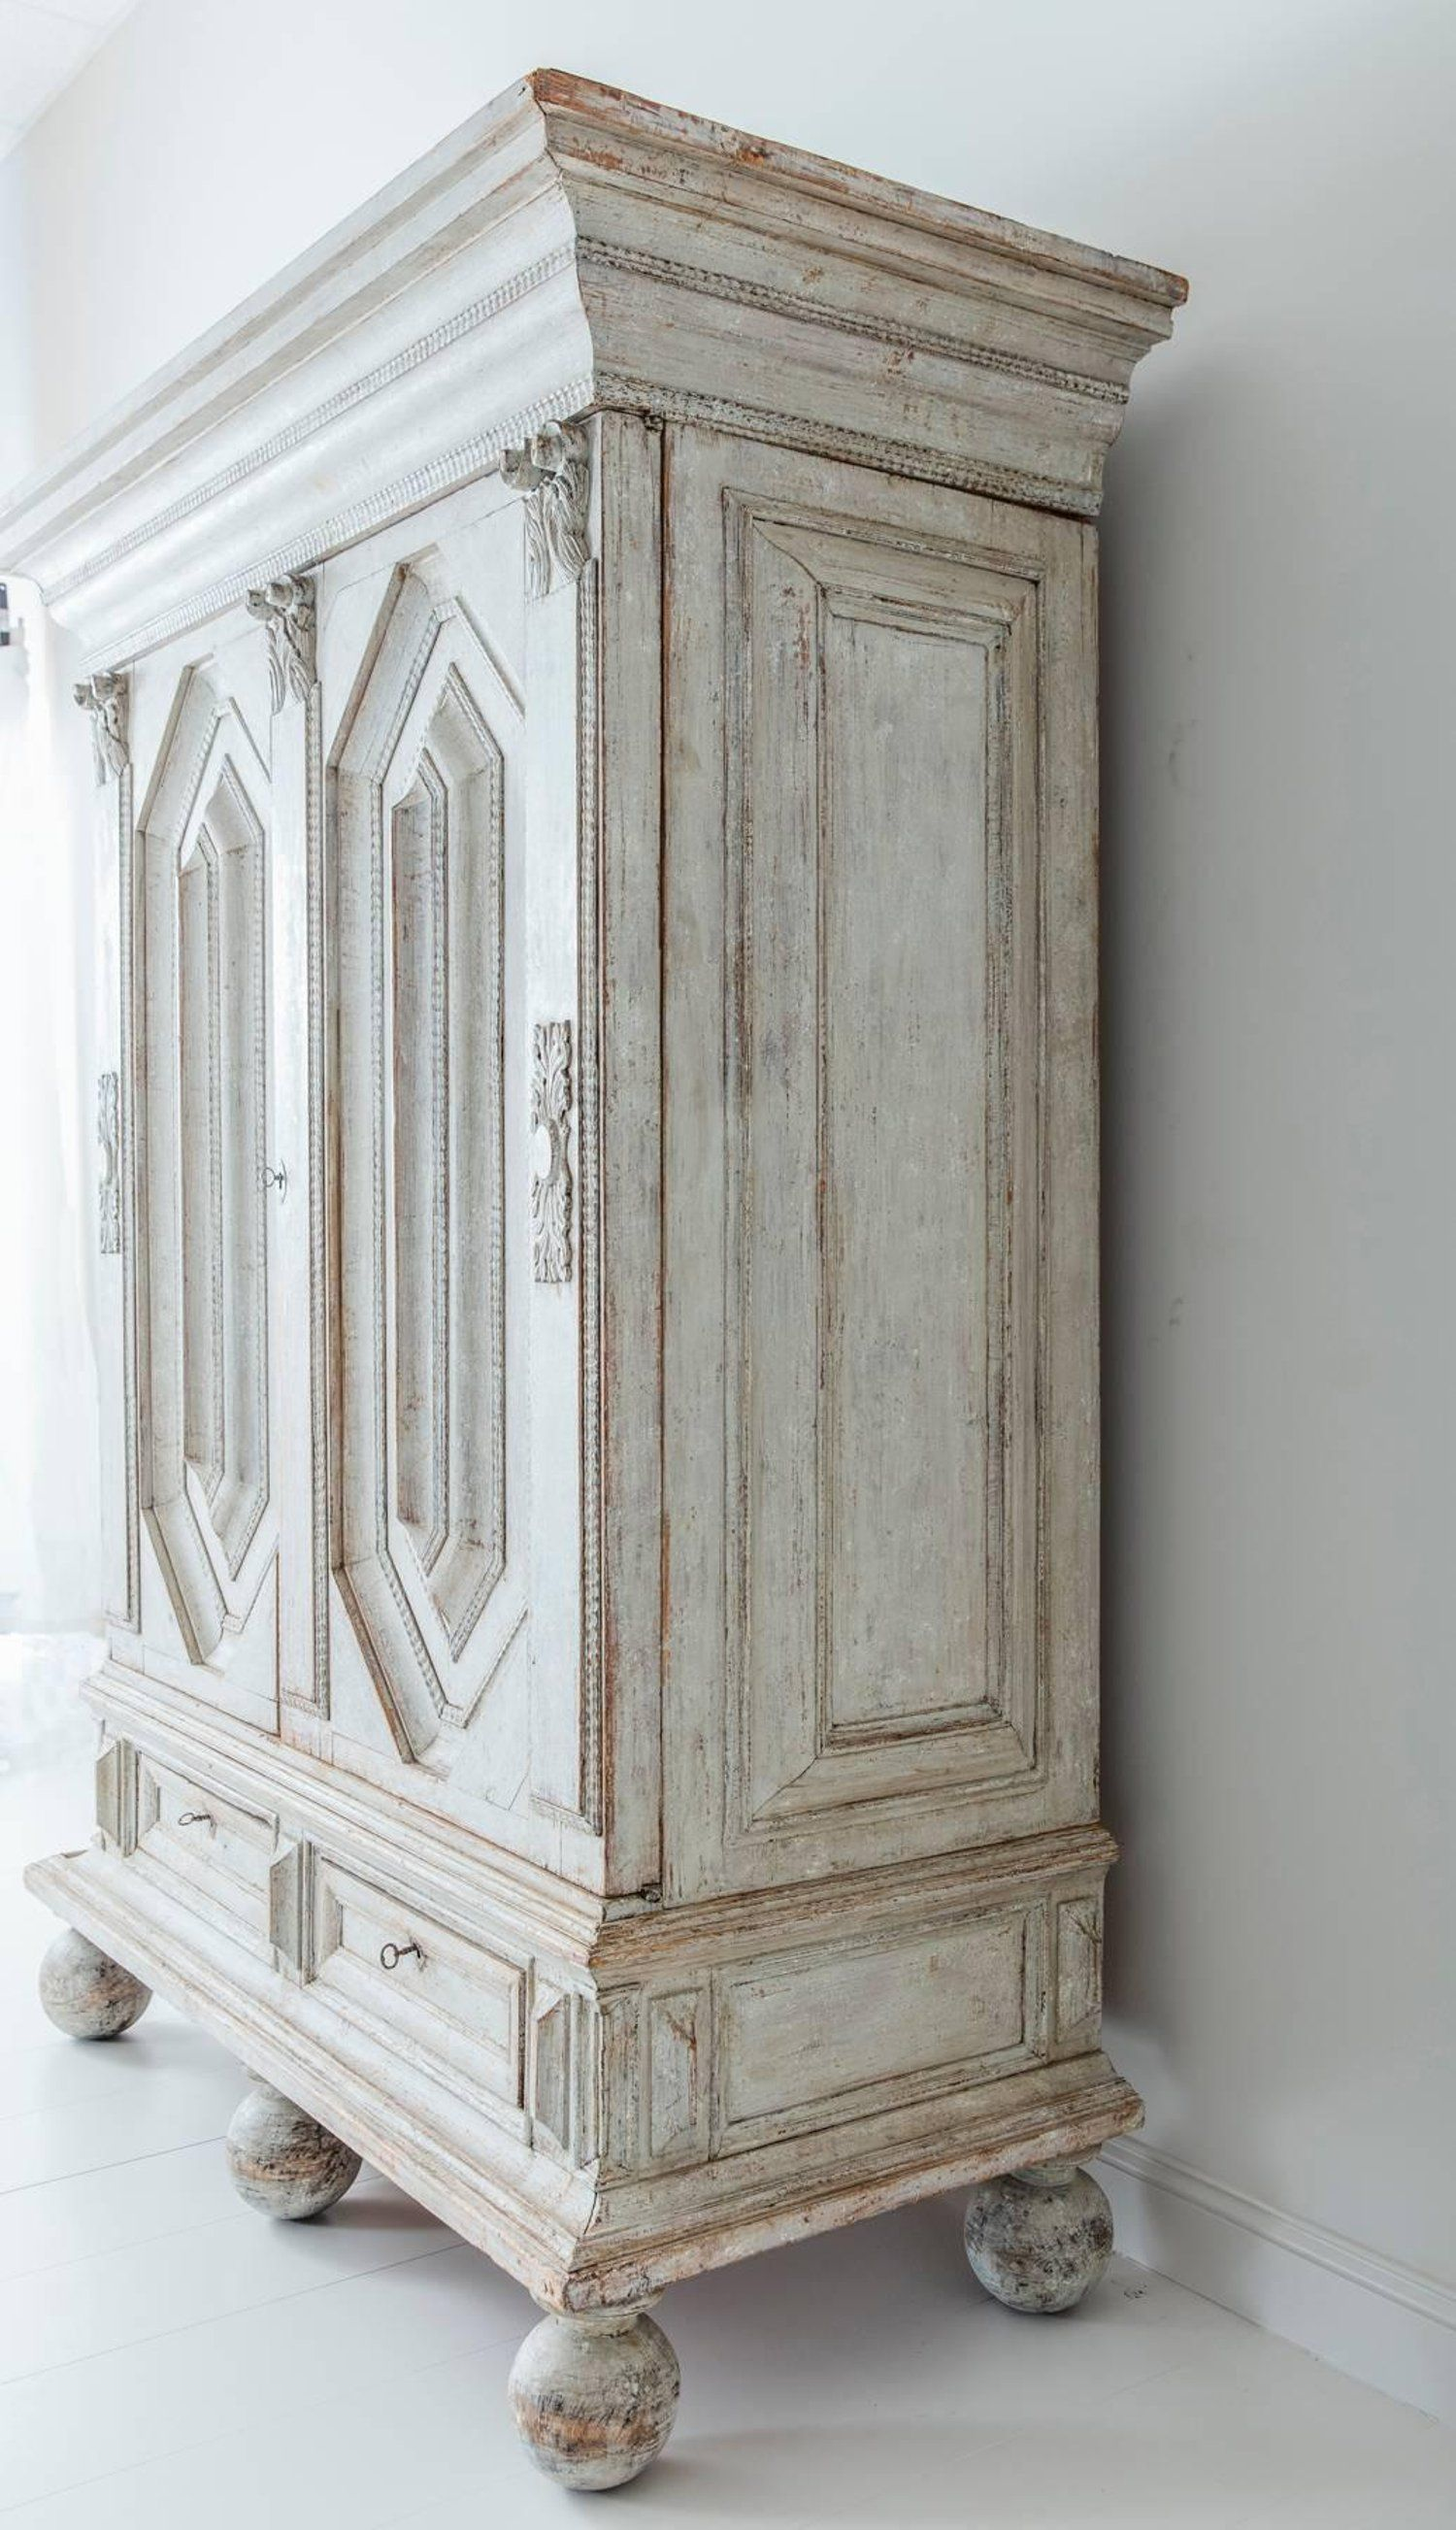 18th Century Swedish Baroque Period Armoire Cabinet From A